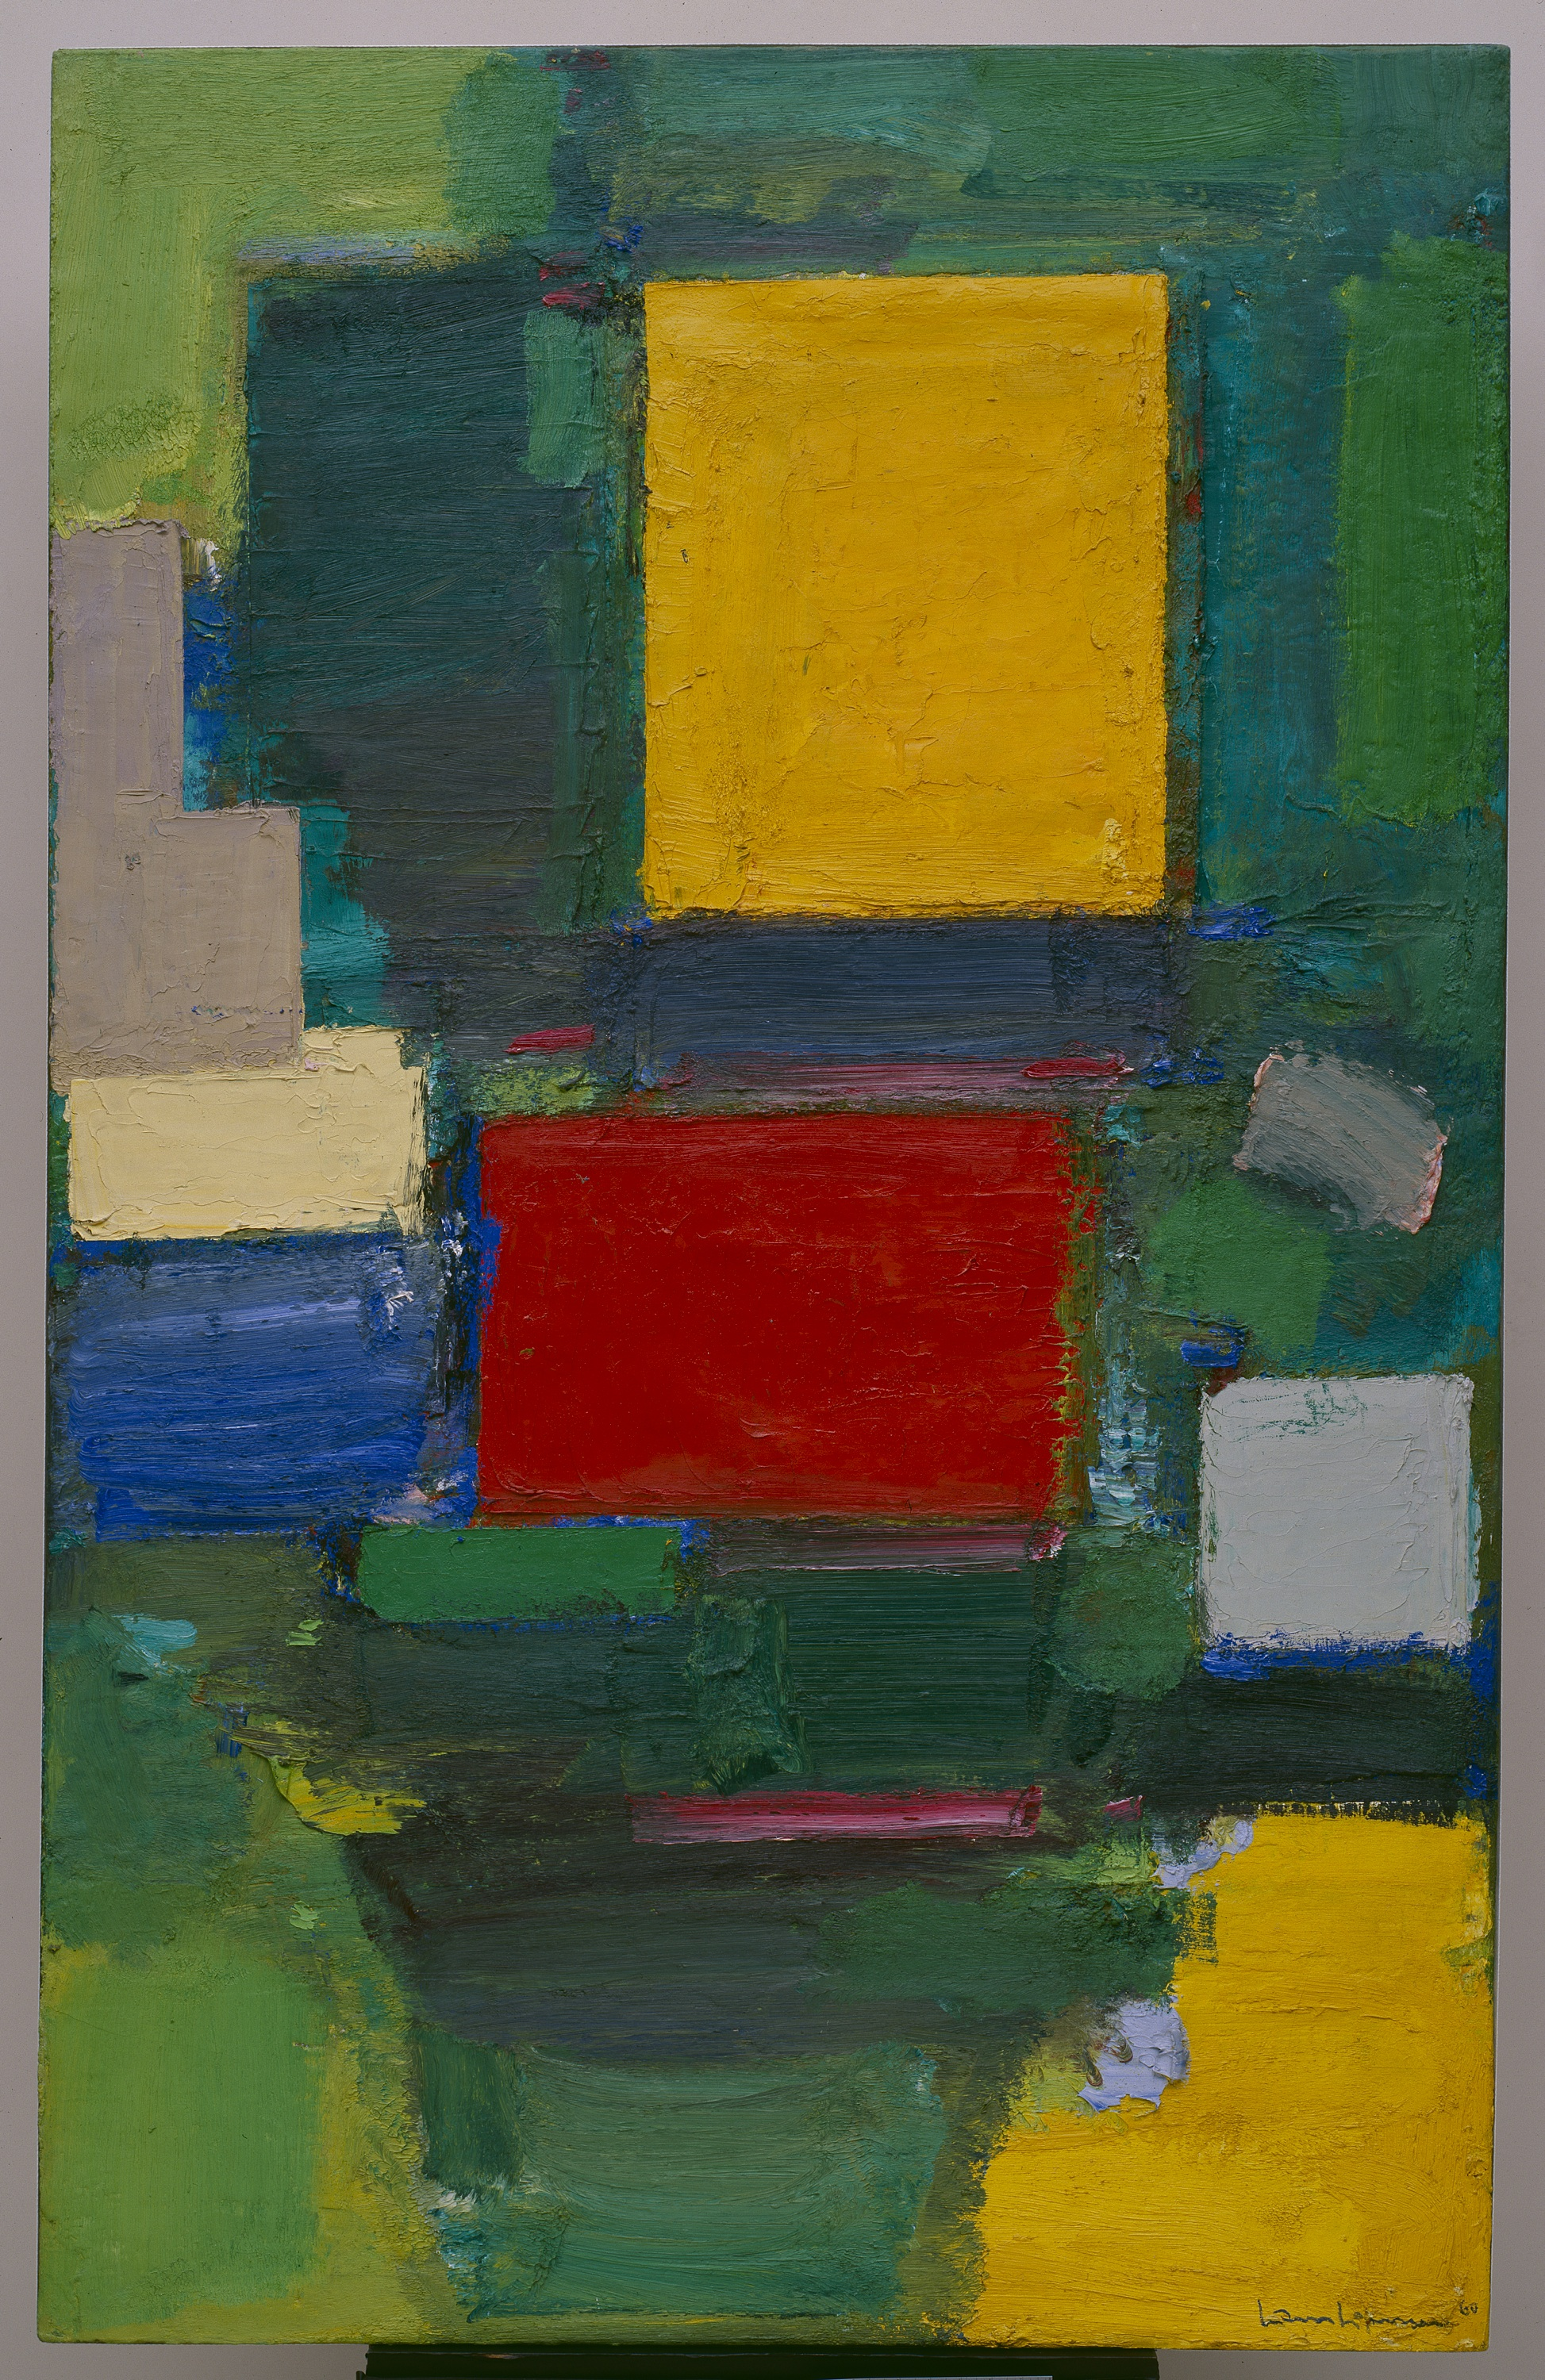 Hans Hofmann (Weissenberg 1880-New York 1966) Il cancello (The Gate), 1959-1960